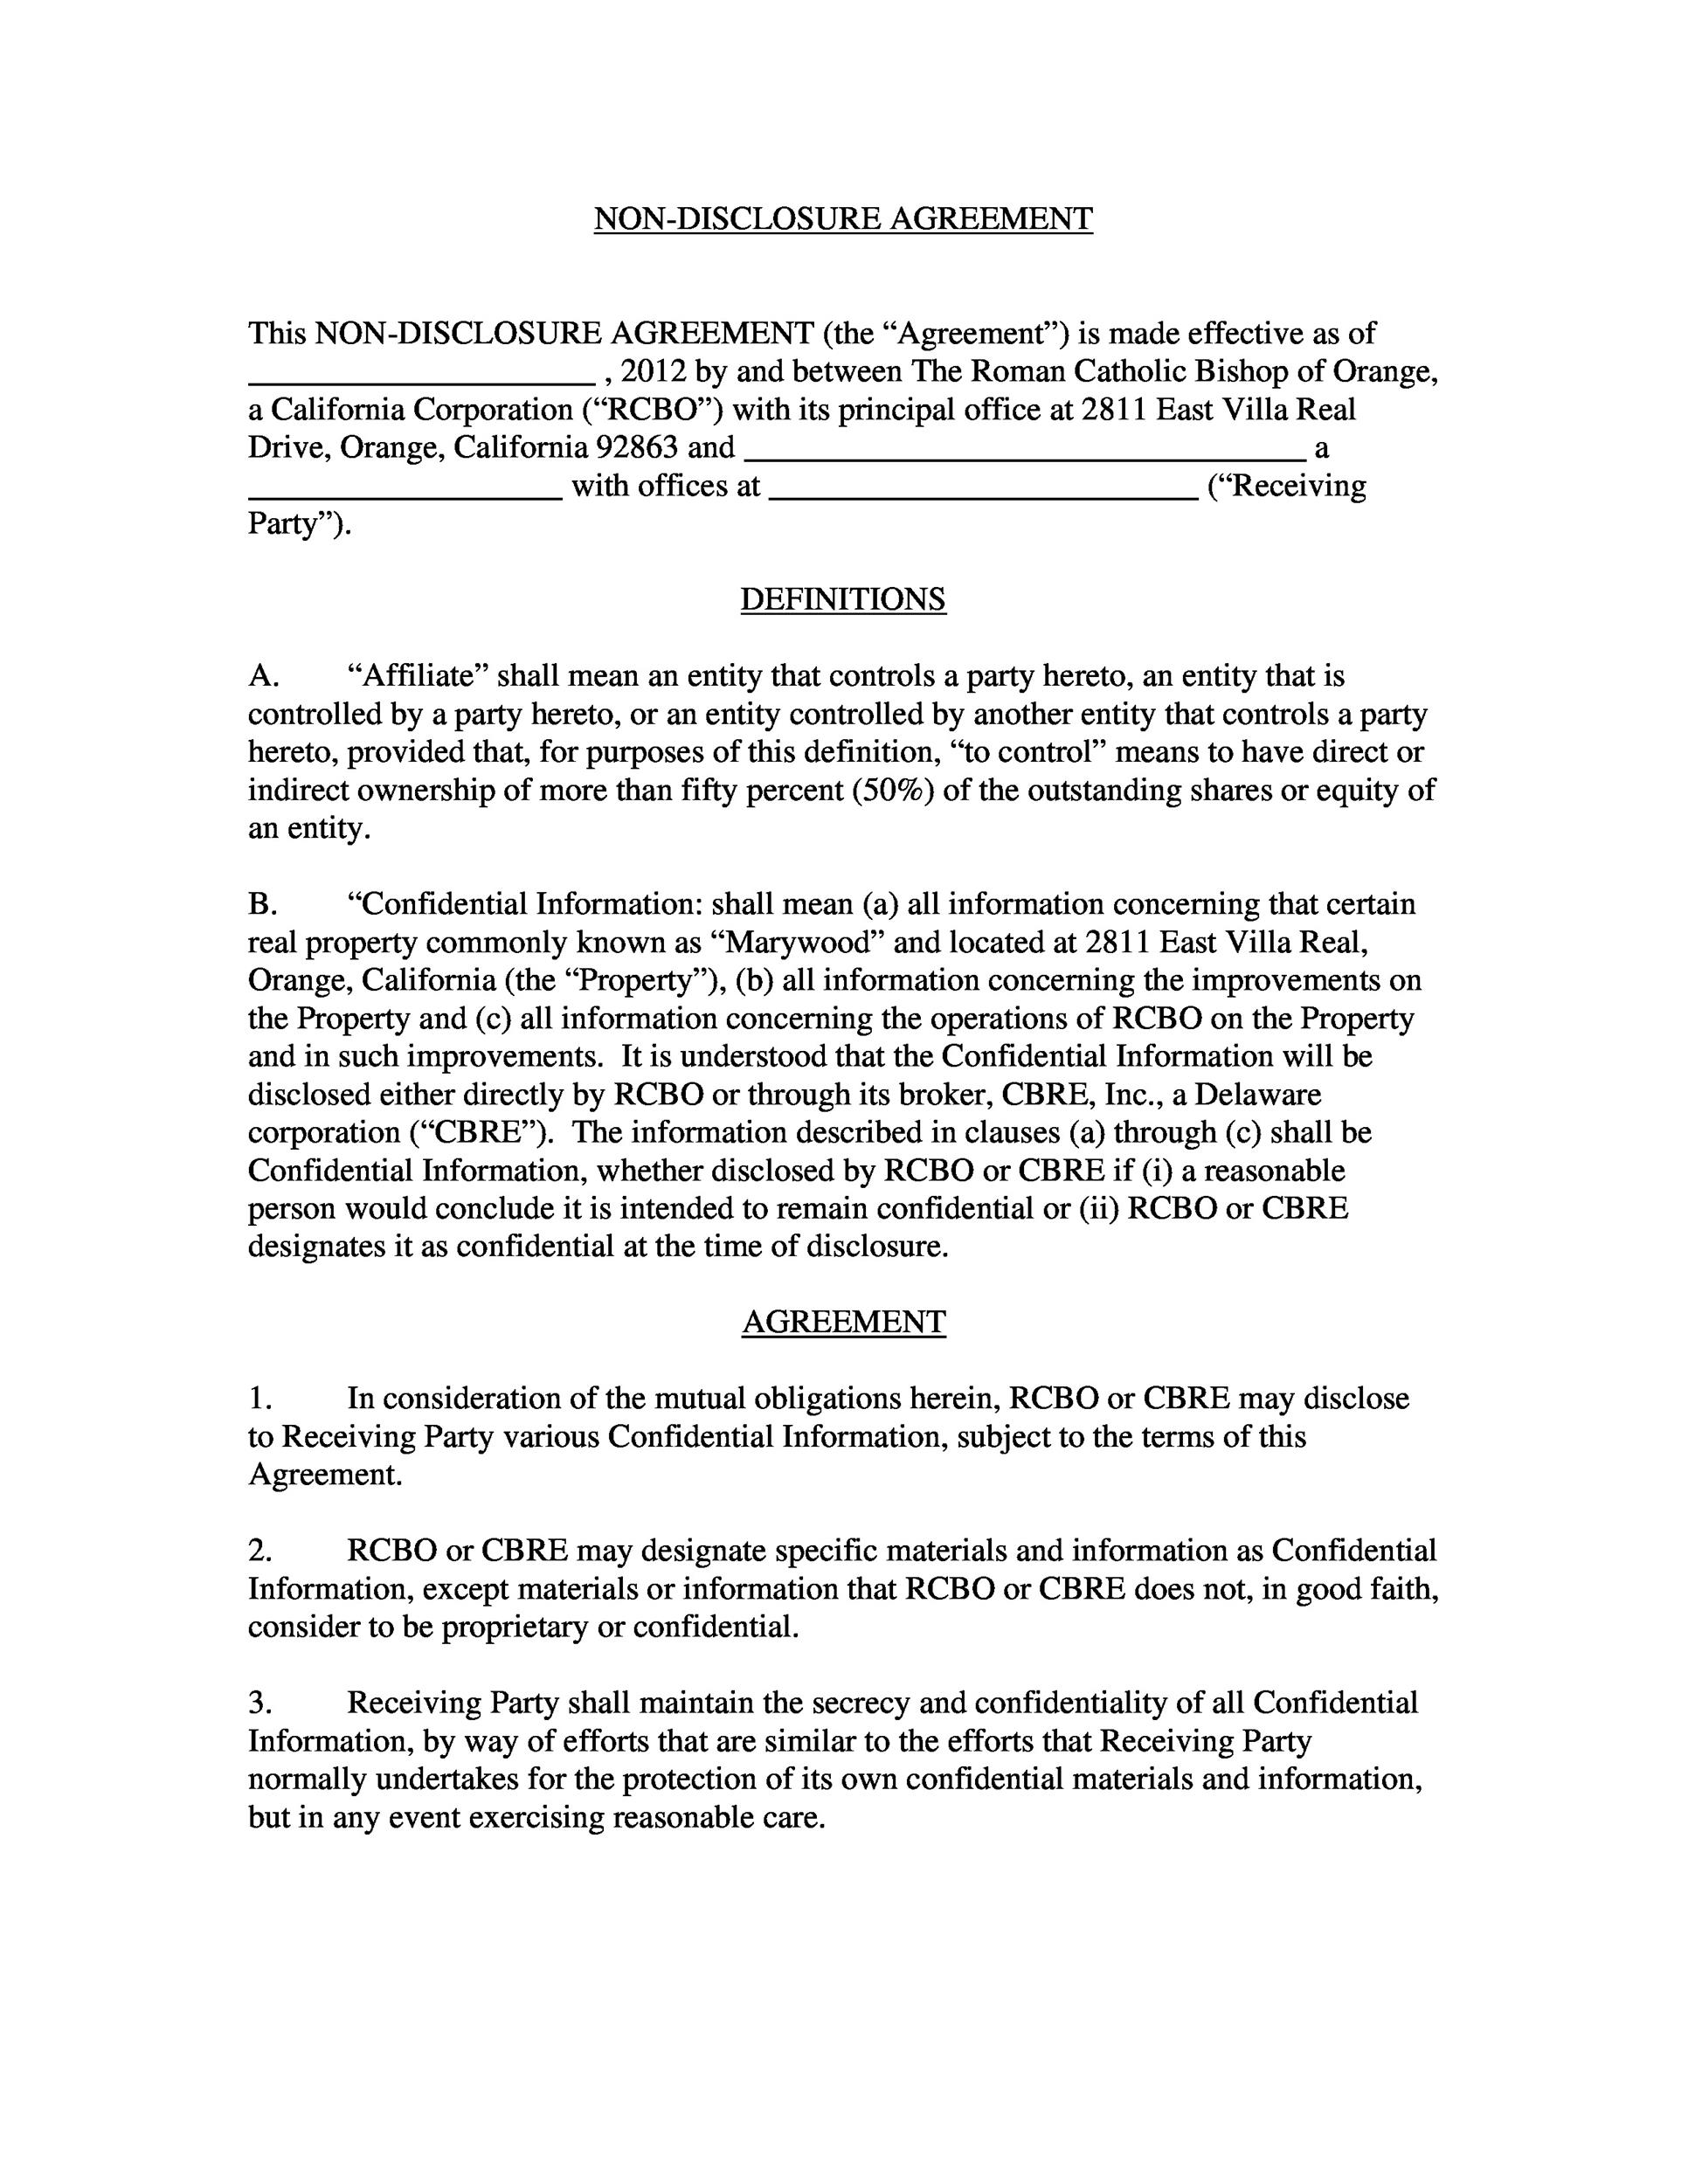 Free Non Disclosure Agreement Template 38